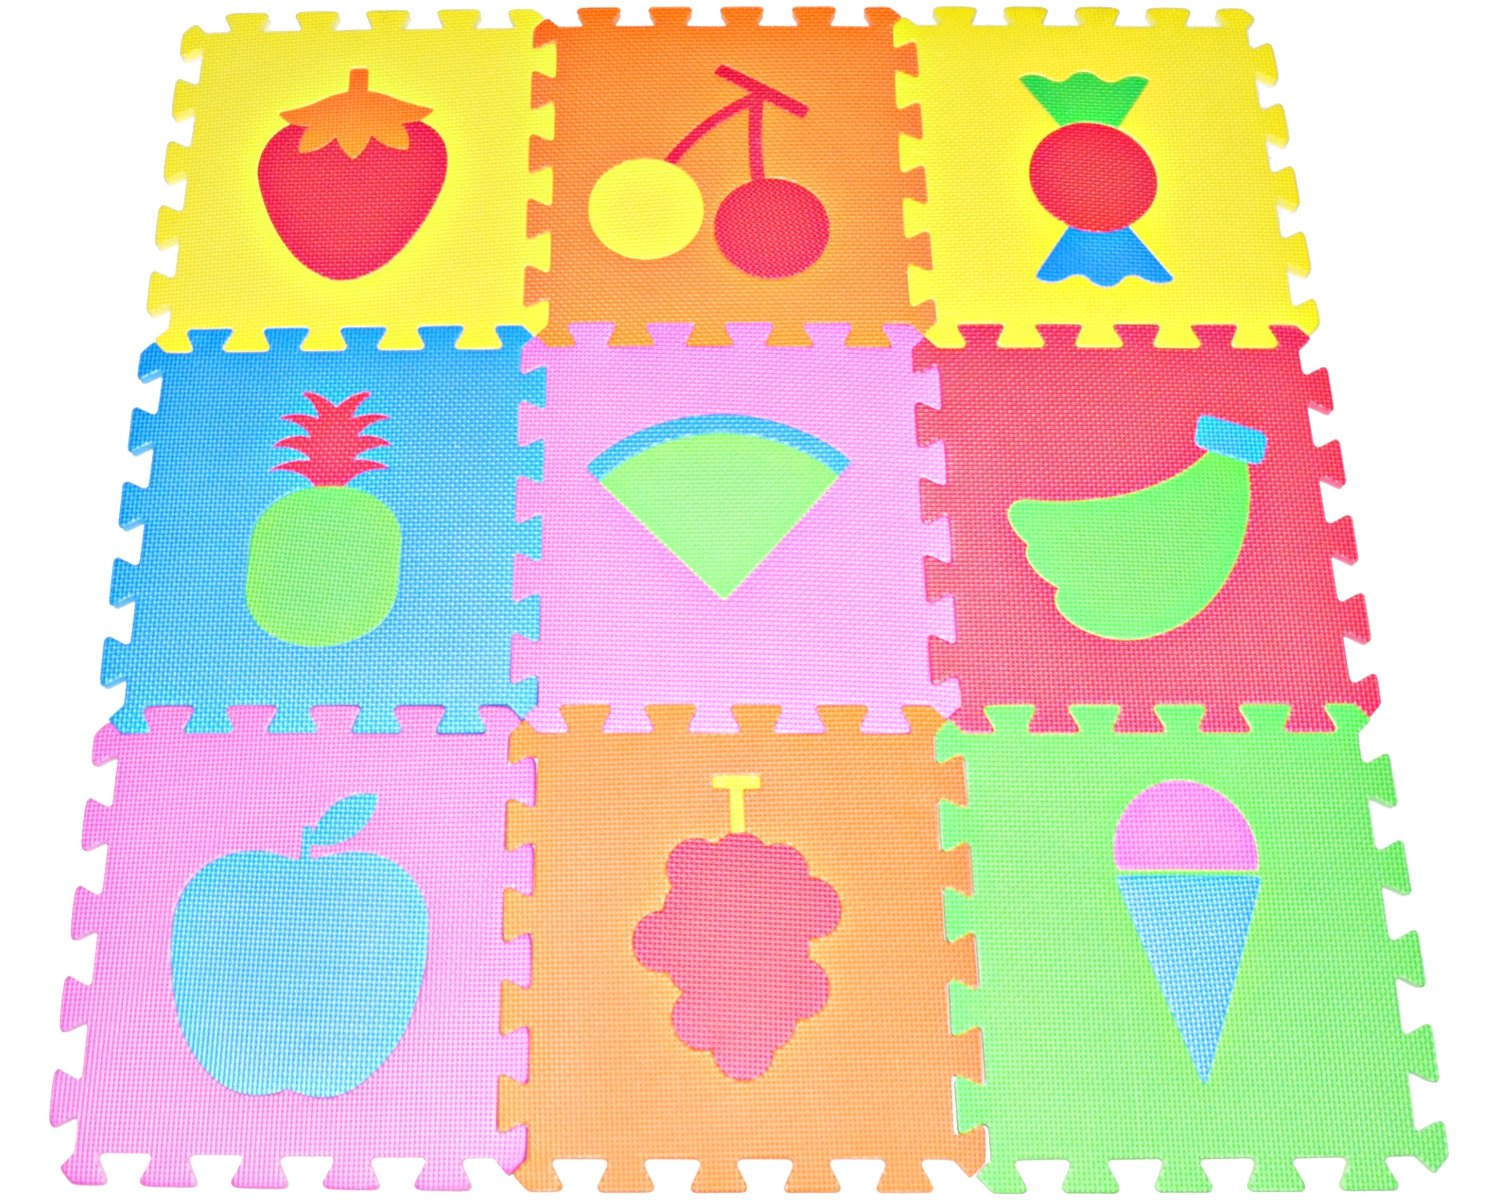 Charming 1 X 1 Ceiling Tiles Thin 12 X 12 Ceramic Tile Square 1200 X 1200 Floor Tiles 2X2 Floor Tile Youthful 2X6 Subway Tile Purple3 Tile Patterns For Floors Amazon.com: Fruit Puzzles Play Mat 9 Tile EVA Foam Multi Color ..